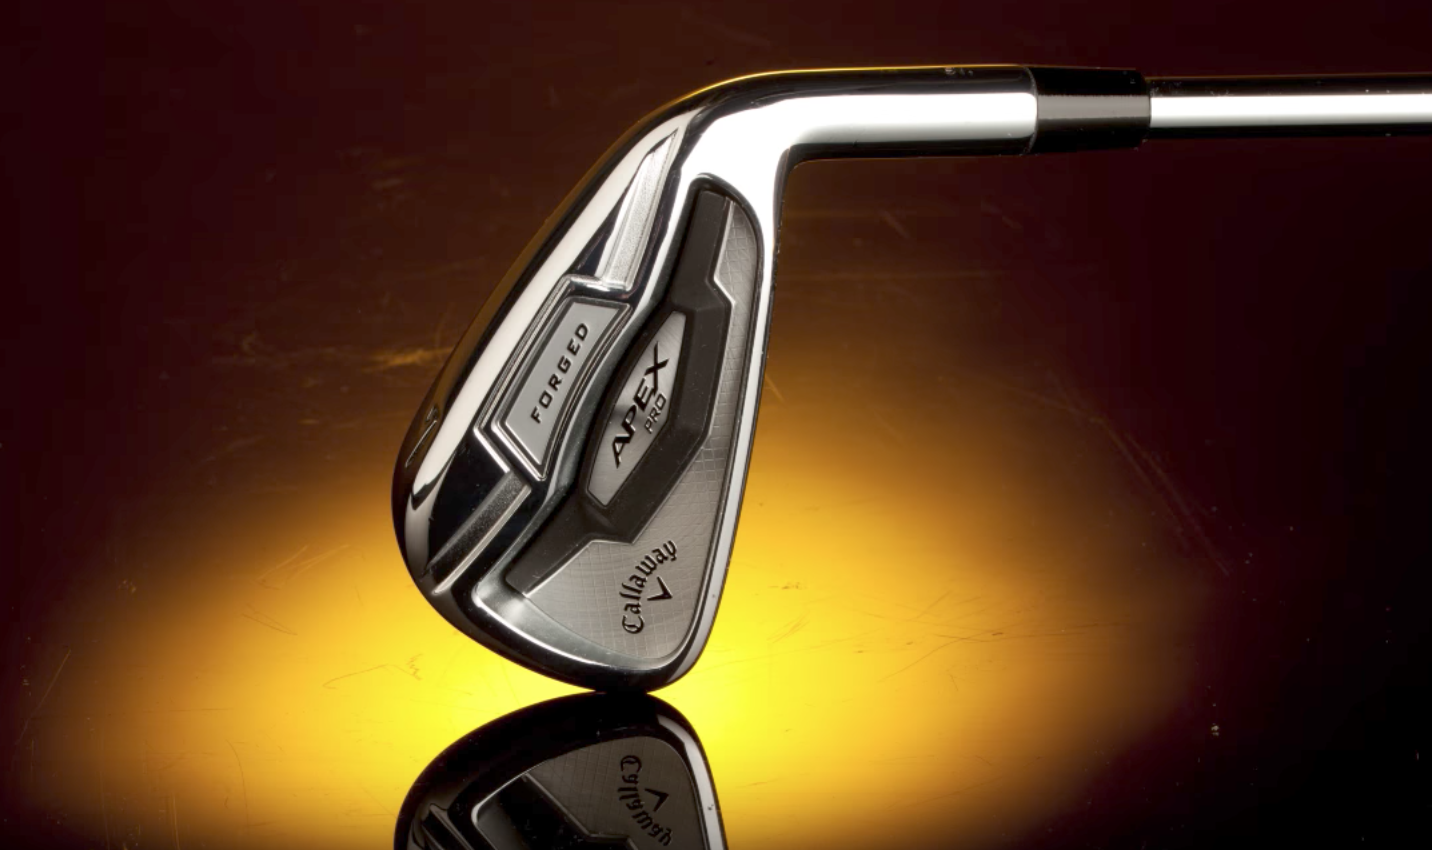 e9012844565 CALLAWAY APEX PRO 16 IRONS - REVIEW